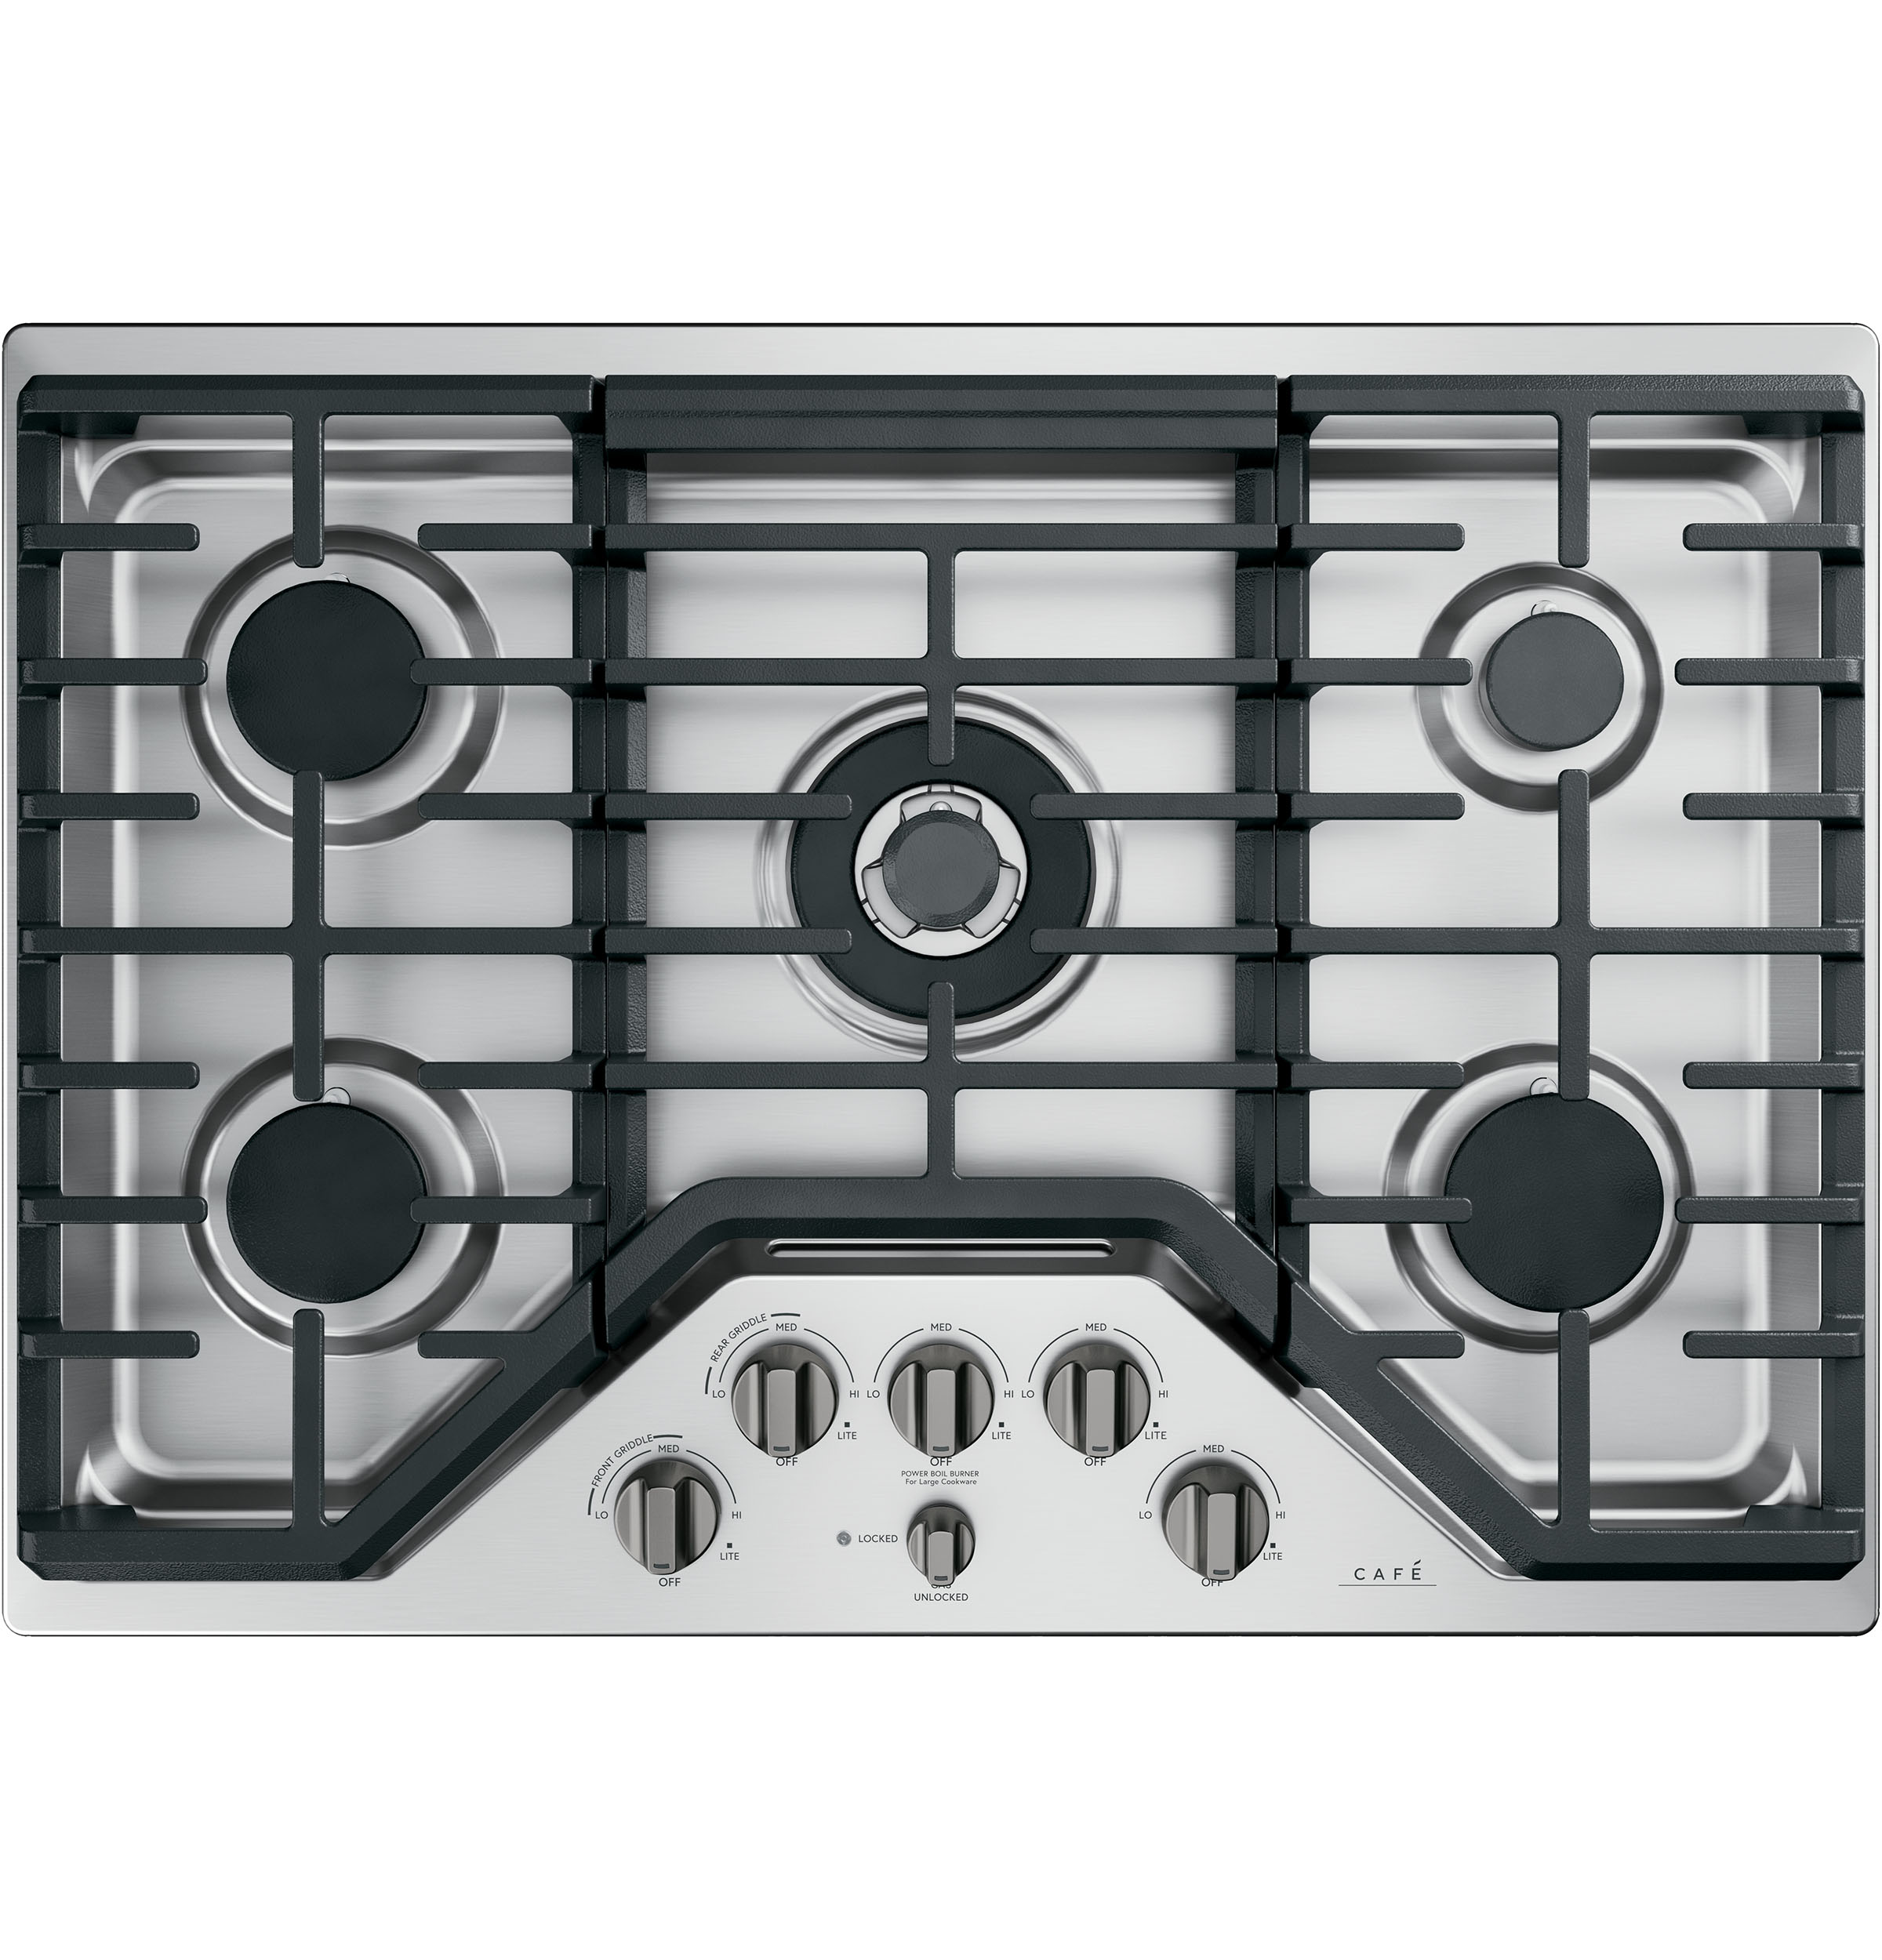 Cafe 5 Gas Cooktop Knobs - Brushed Black